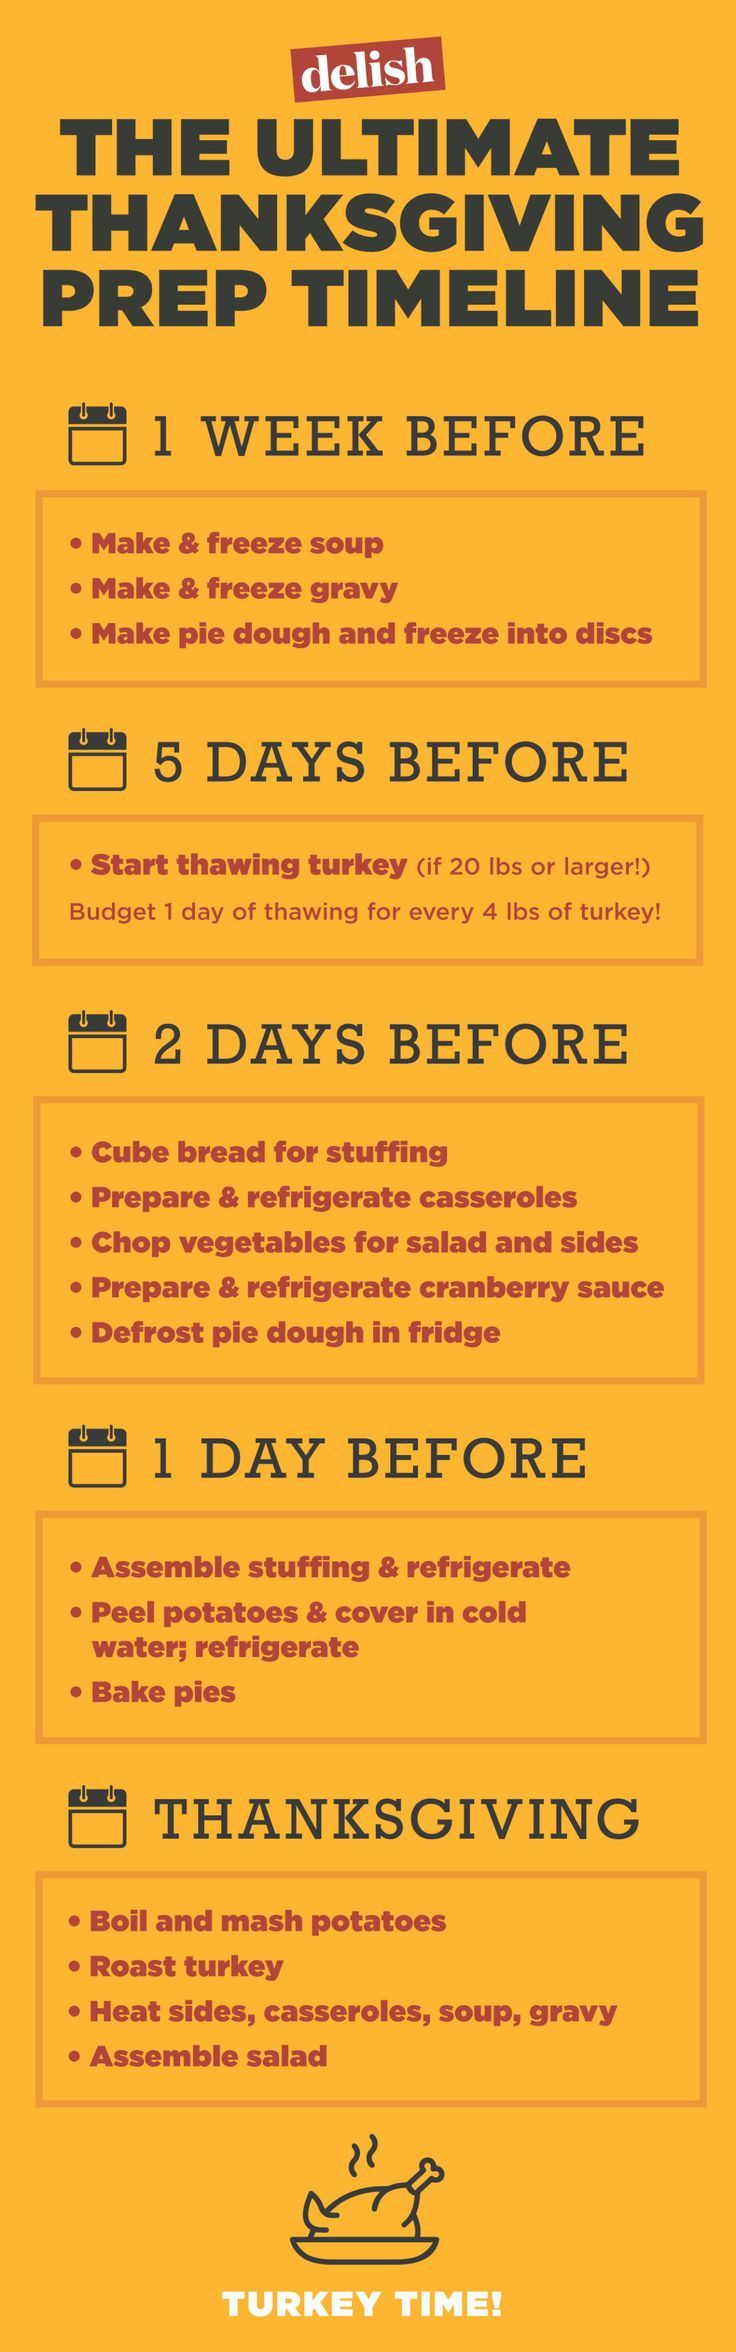 Planning ahead will save you time, energy and keep you from feeling stressed when it's time to celebrate Thanksgiving. Here's when you should start cooking every dish you'll need to make a perfect Thanksgiving dinner.